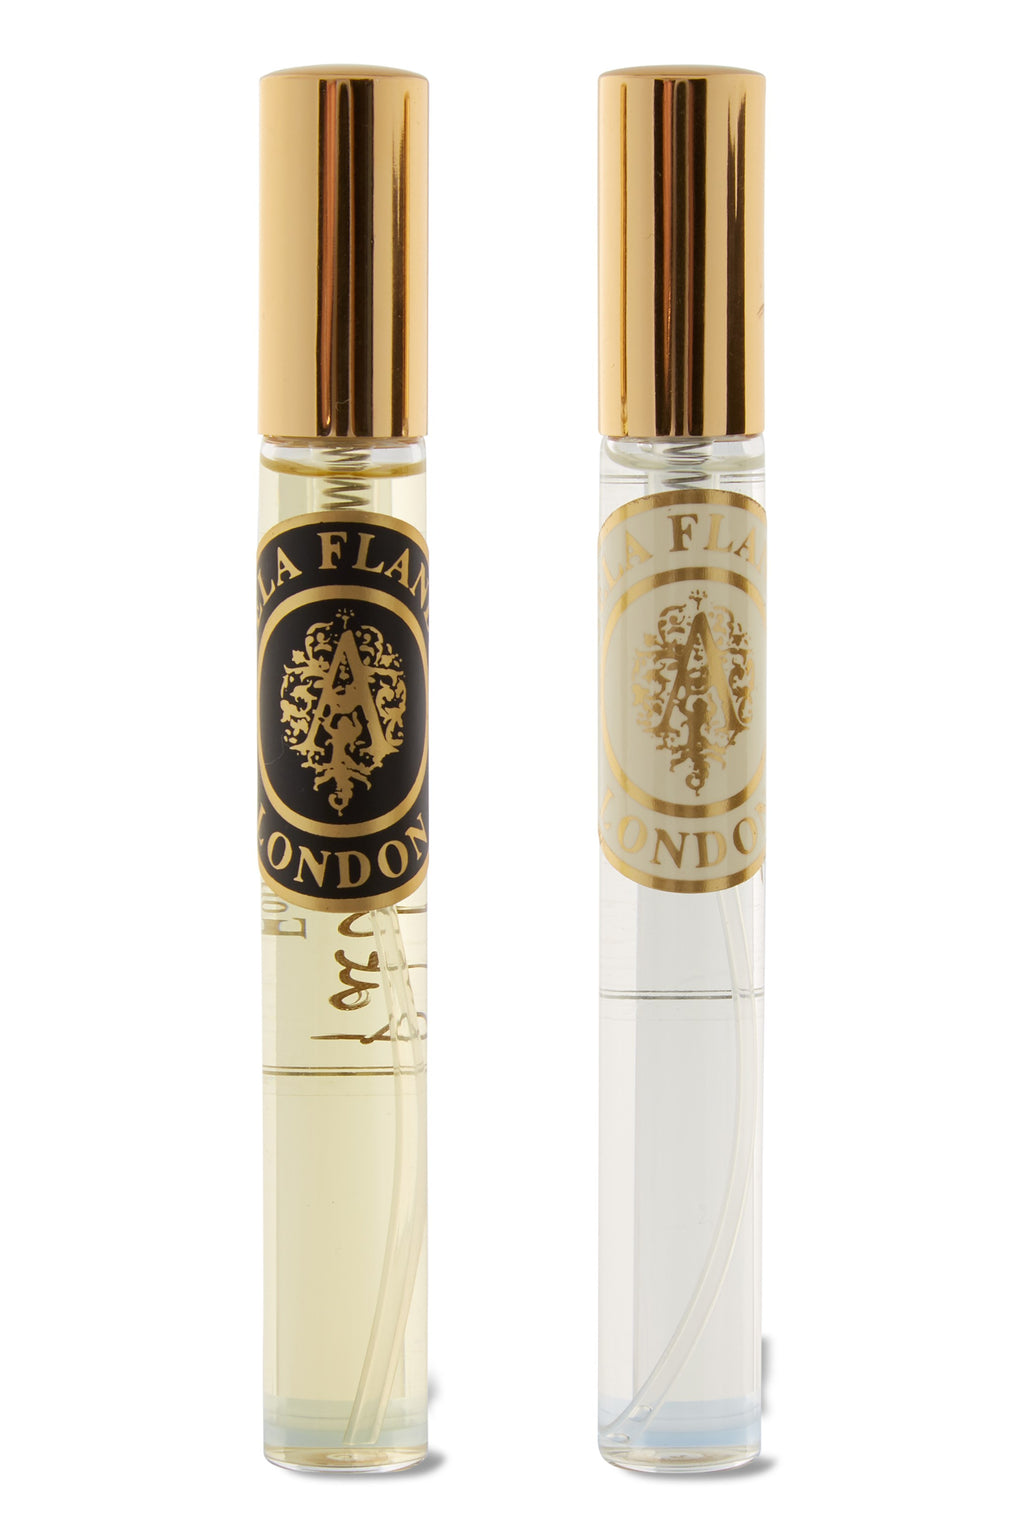 Tuberose and Patchouli Dark Flower Duo